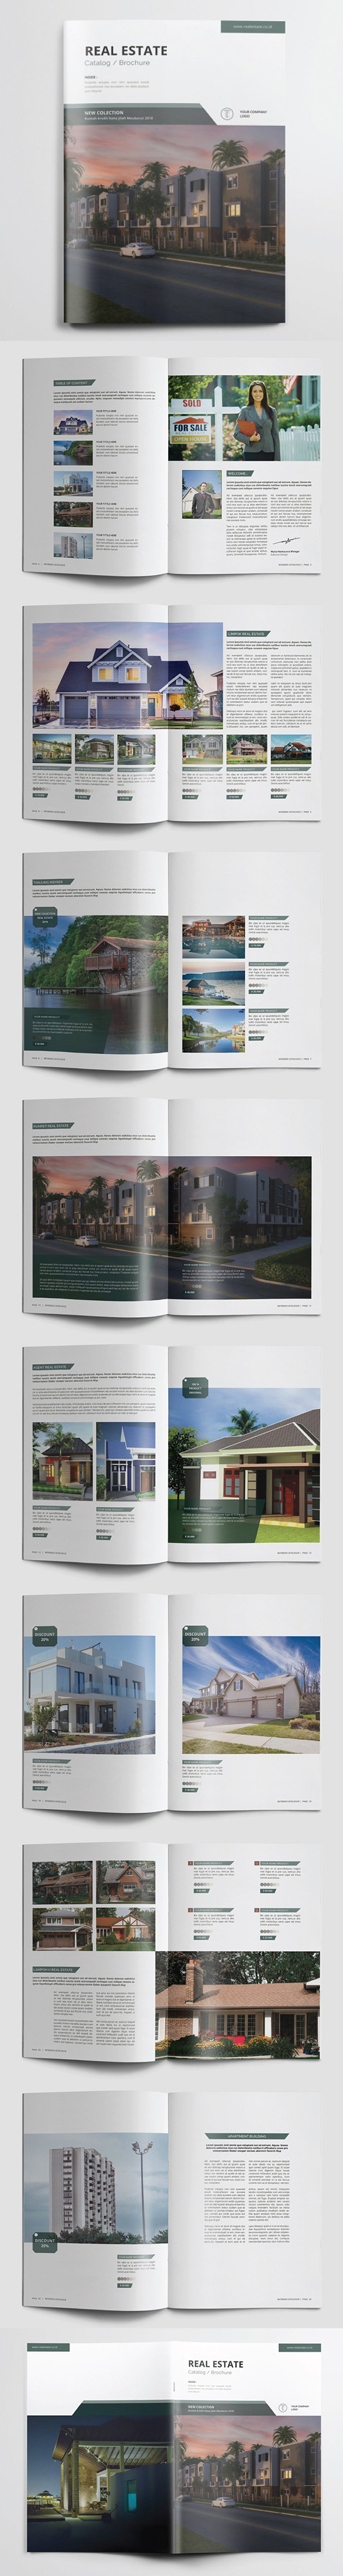 Creative Real Estate Brochure / Catalog Template